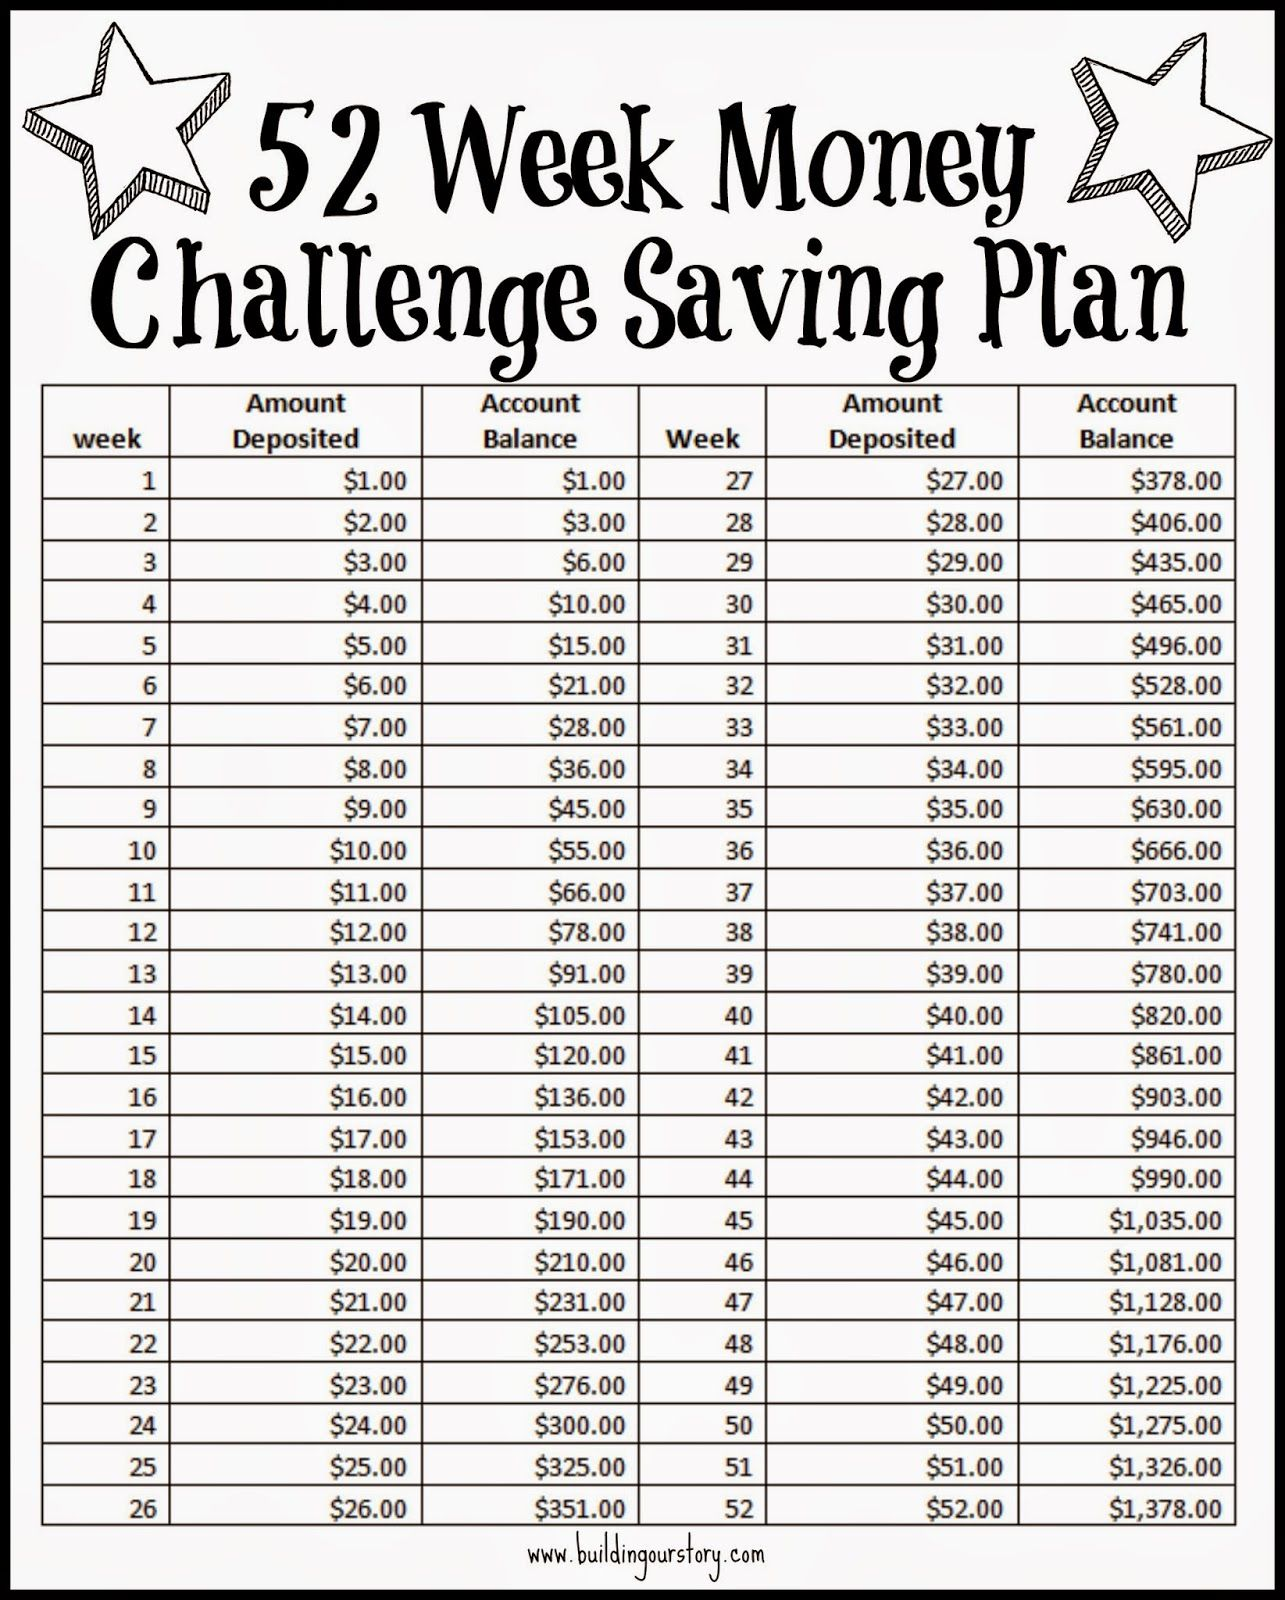 image regarding 52 Week Money Challenge Printable identified as 52 7 days Cash Dilemma Preserving Method - Totally free Printable